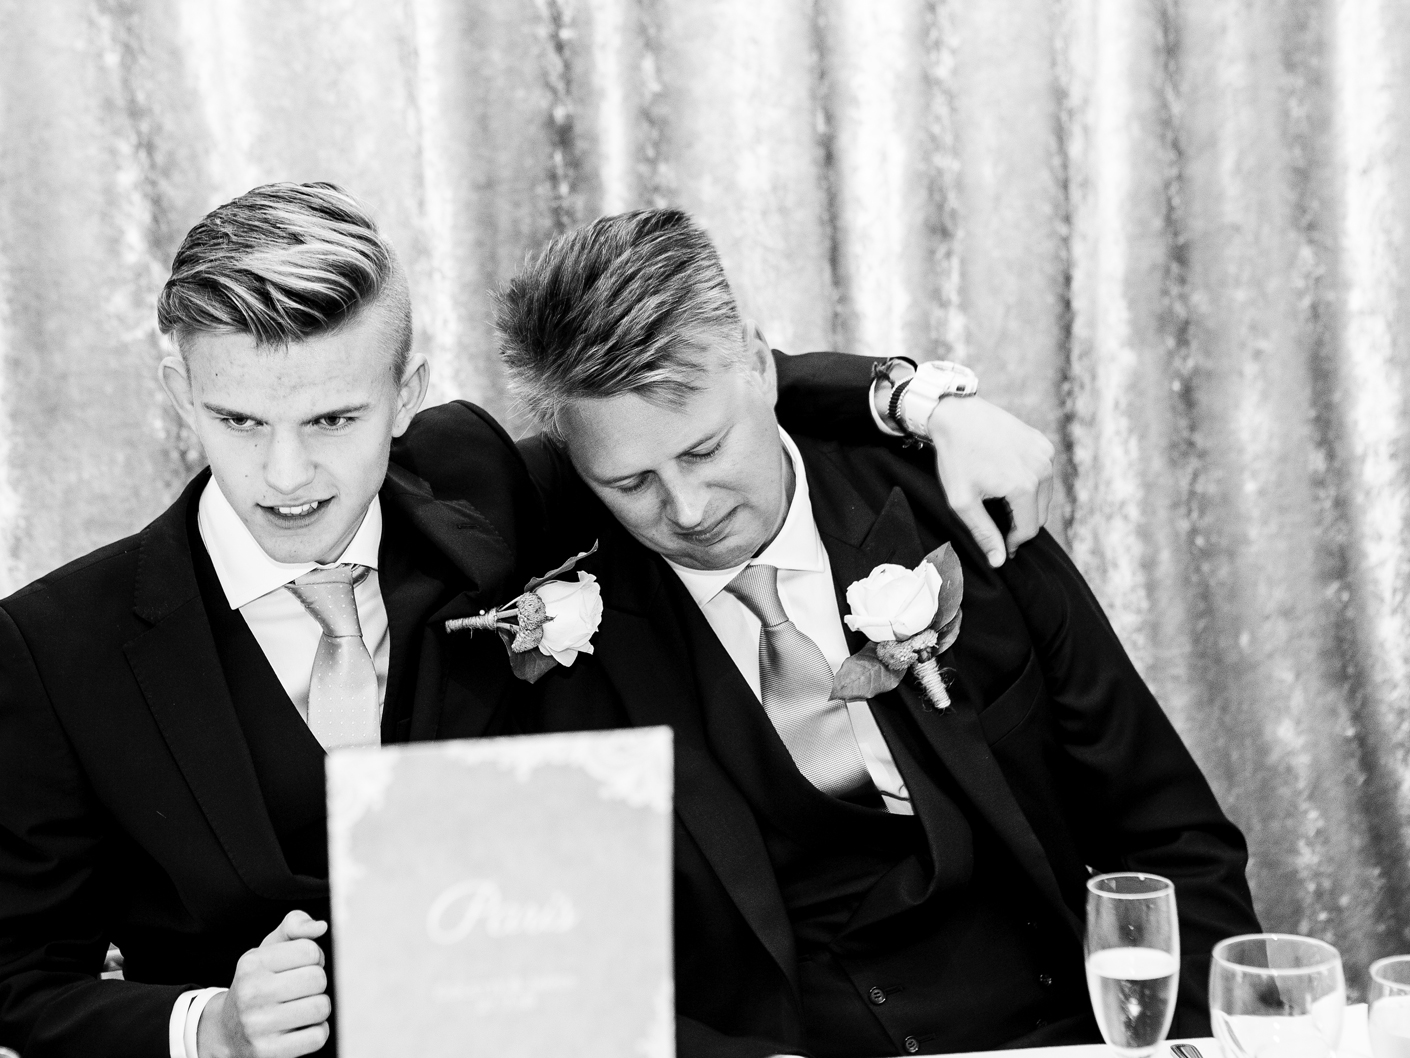 photography-of-the-groom-at-the-wedding-breakfast-at-merrydale-manor-knutsford-cheshire